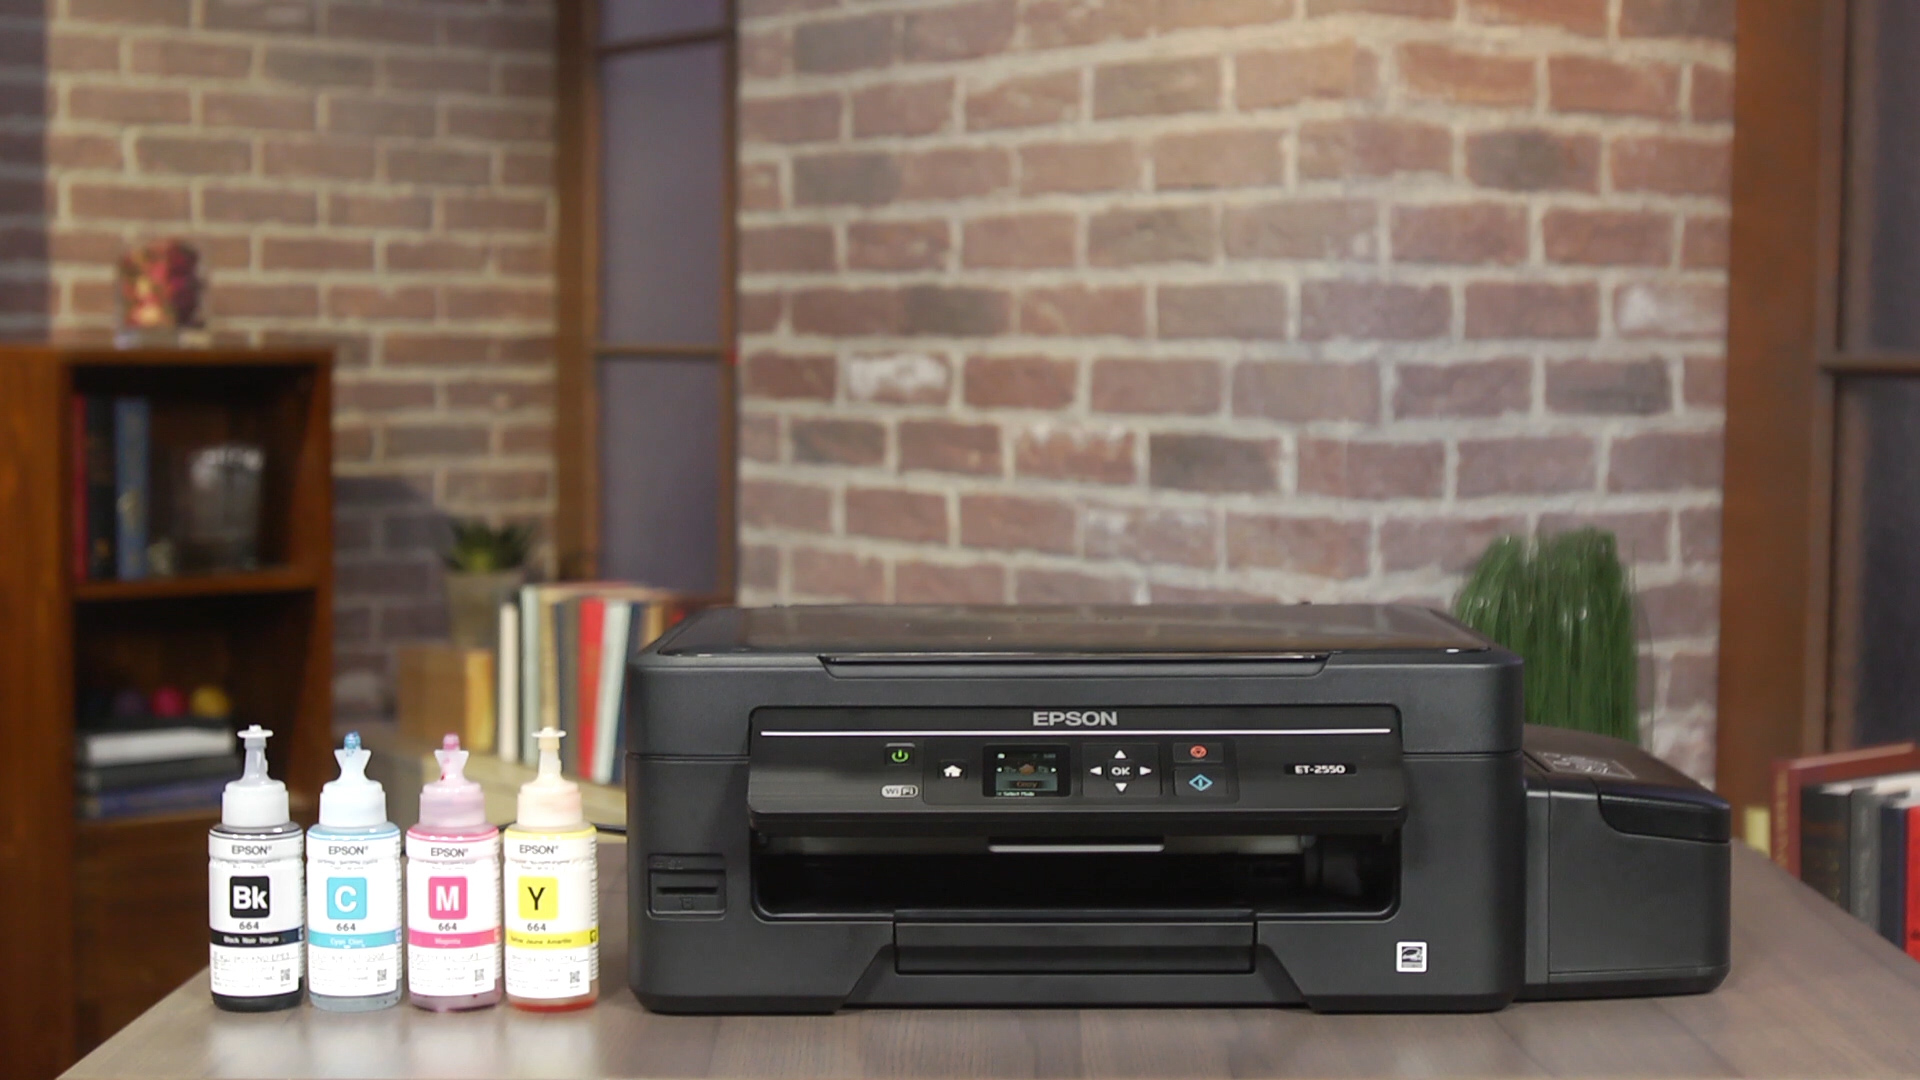 Video: Epson EcoTank printer does away with ink cartridges, opts for DIY refills